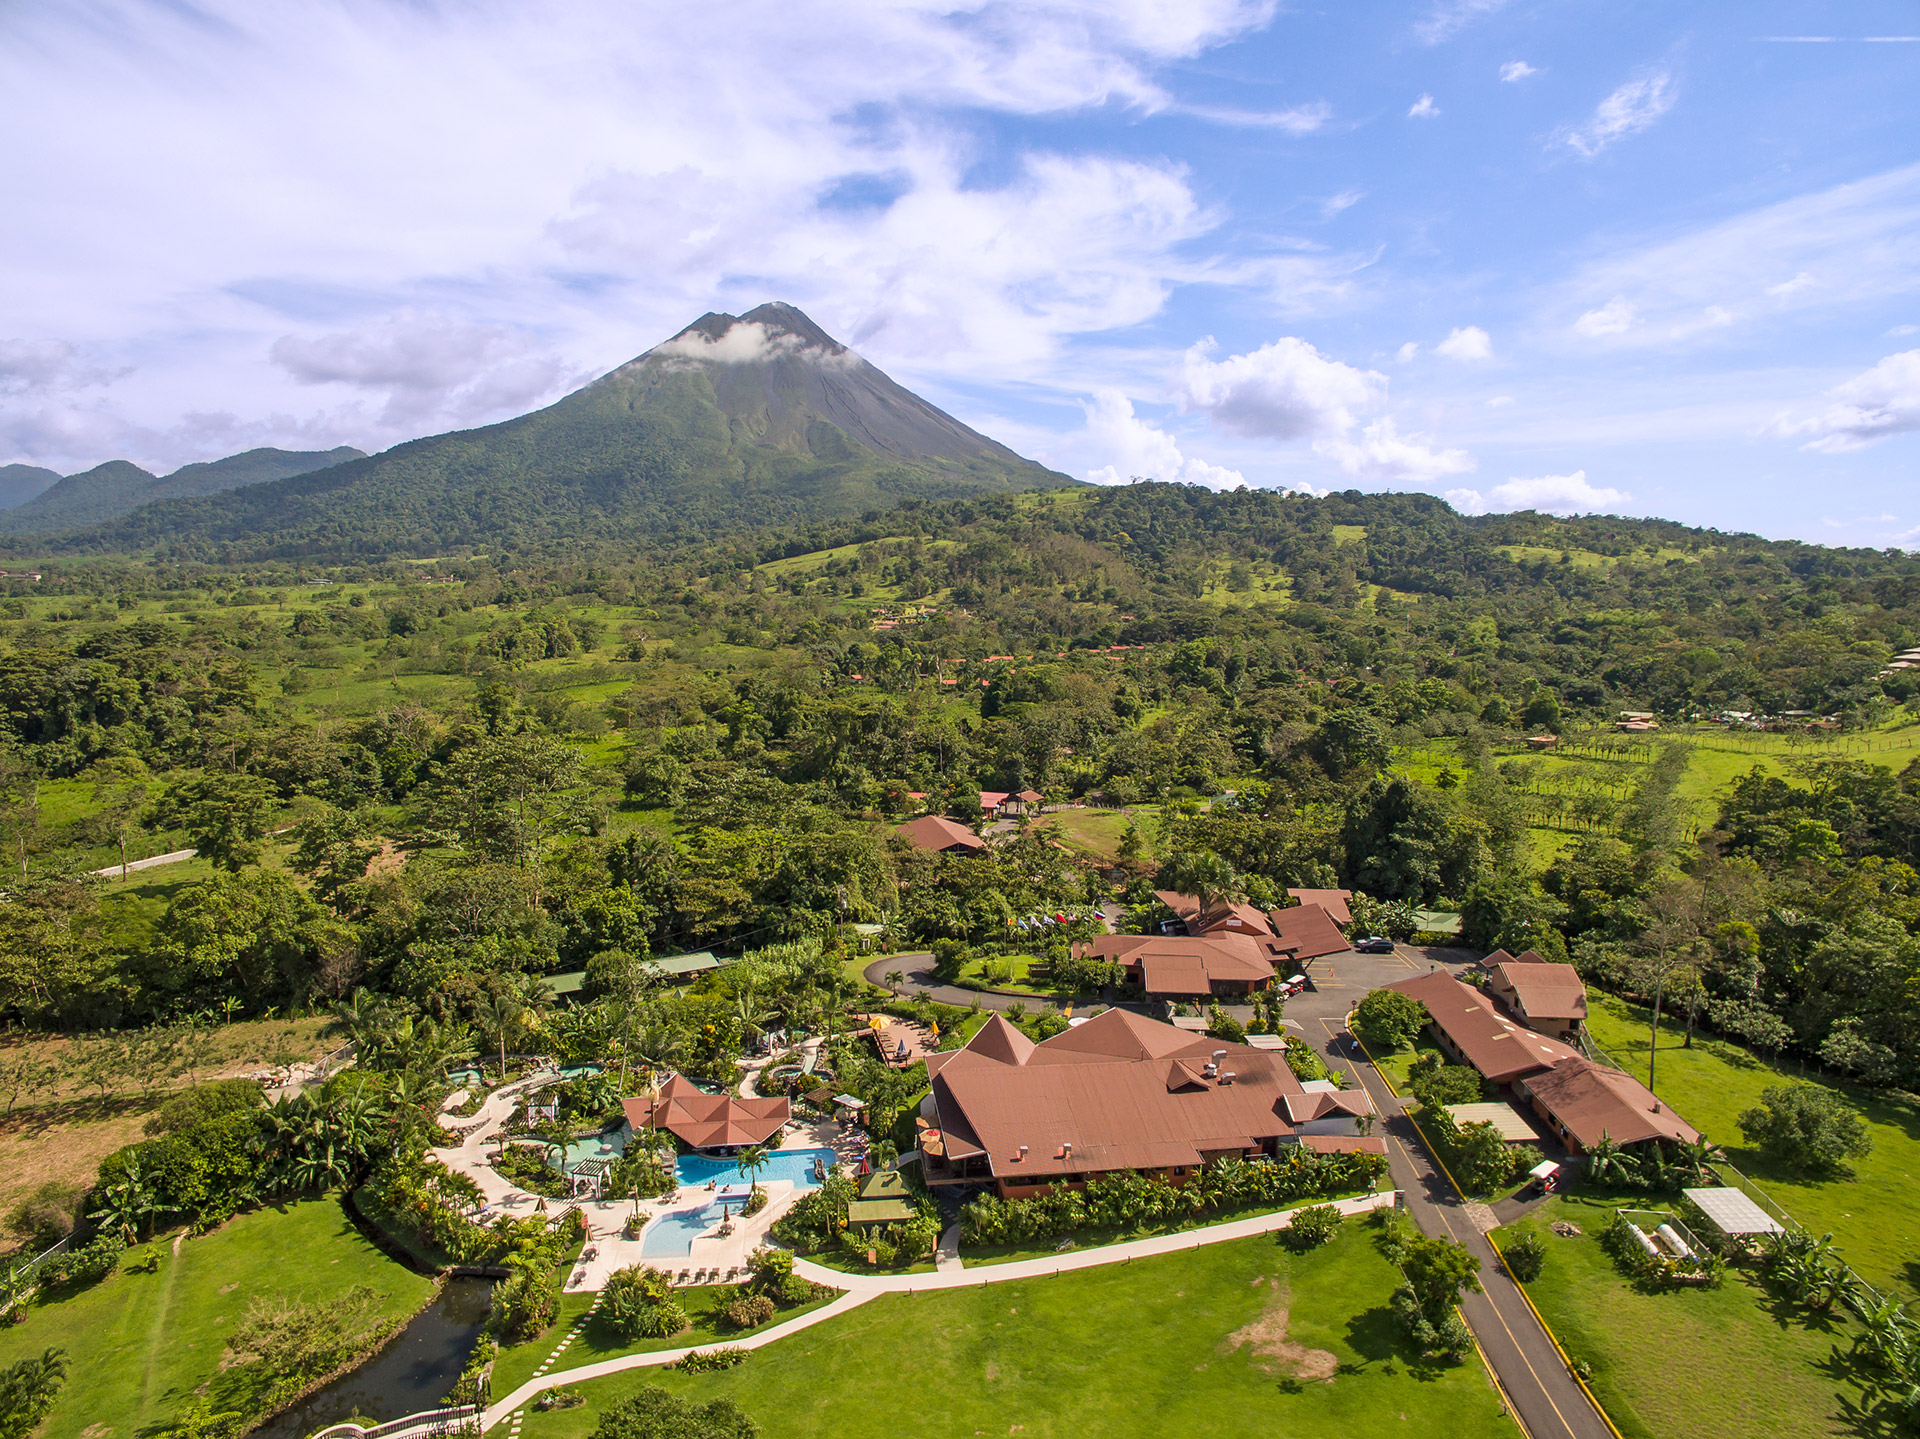 wp-content/uploads/itineraries/Costa-Rica/arenal-springs-outside-2.jpg